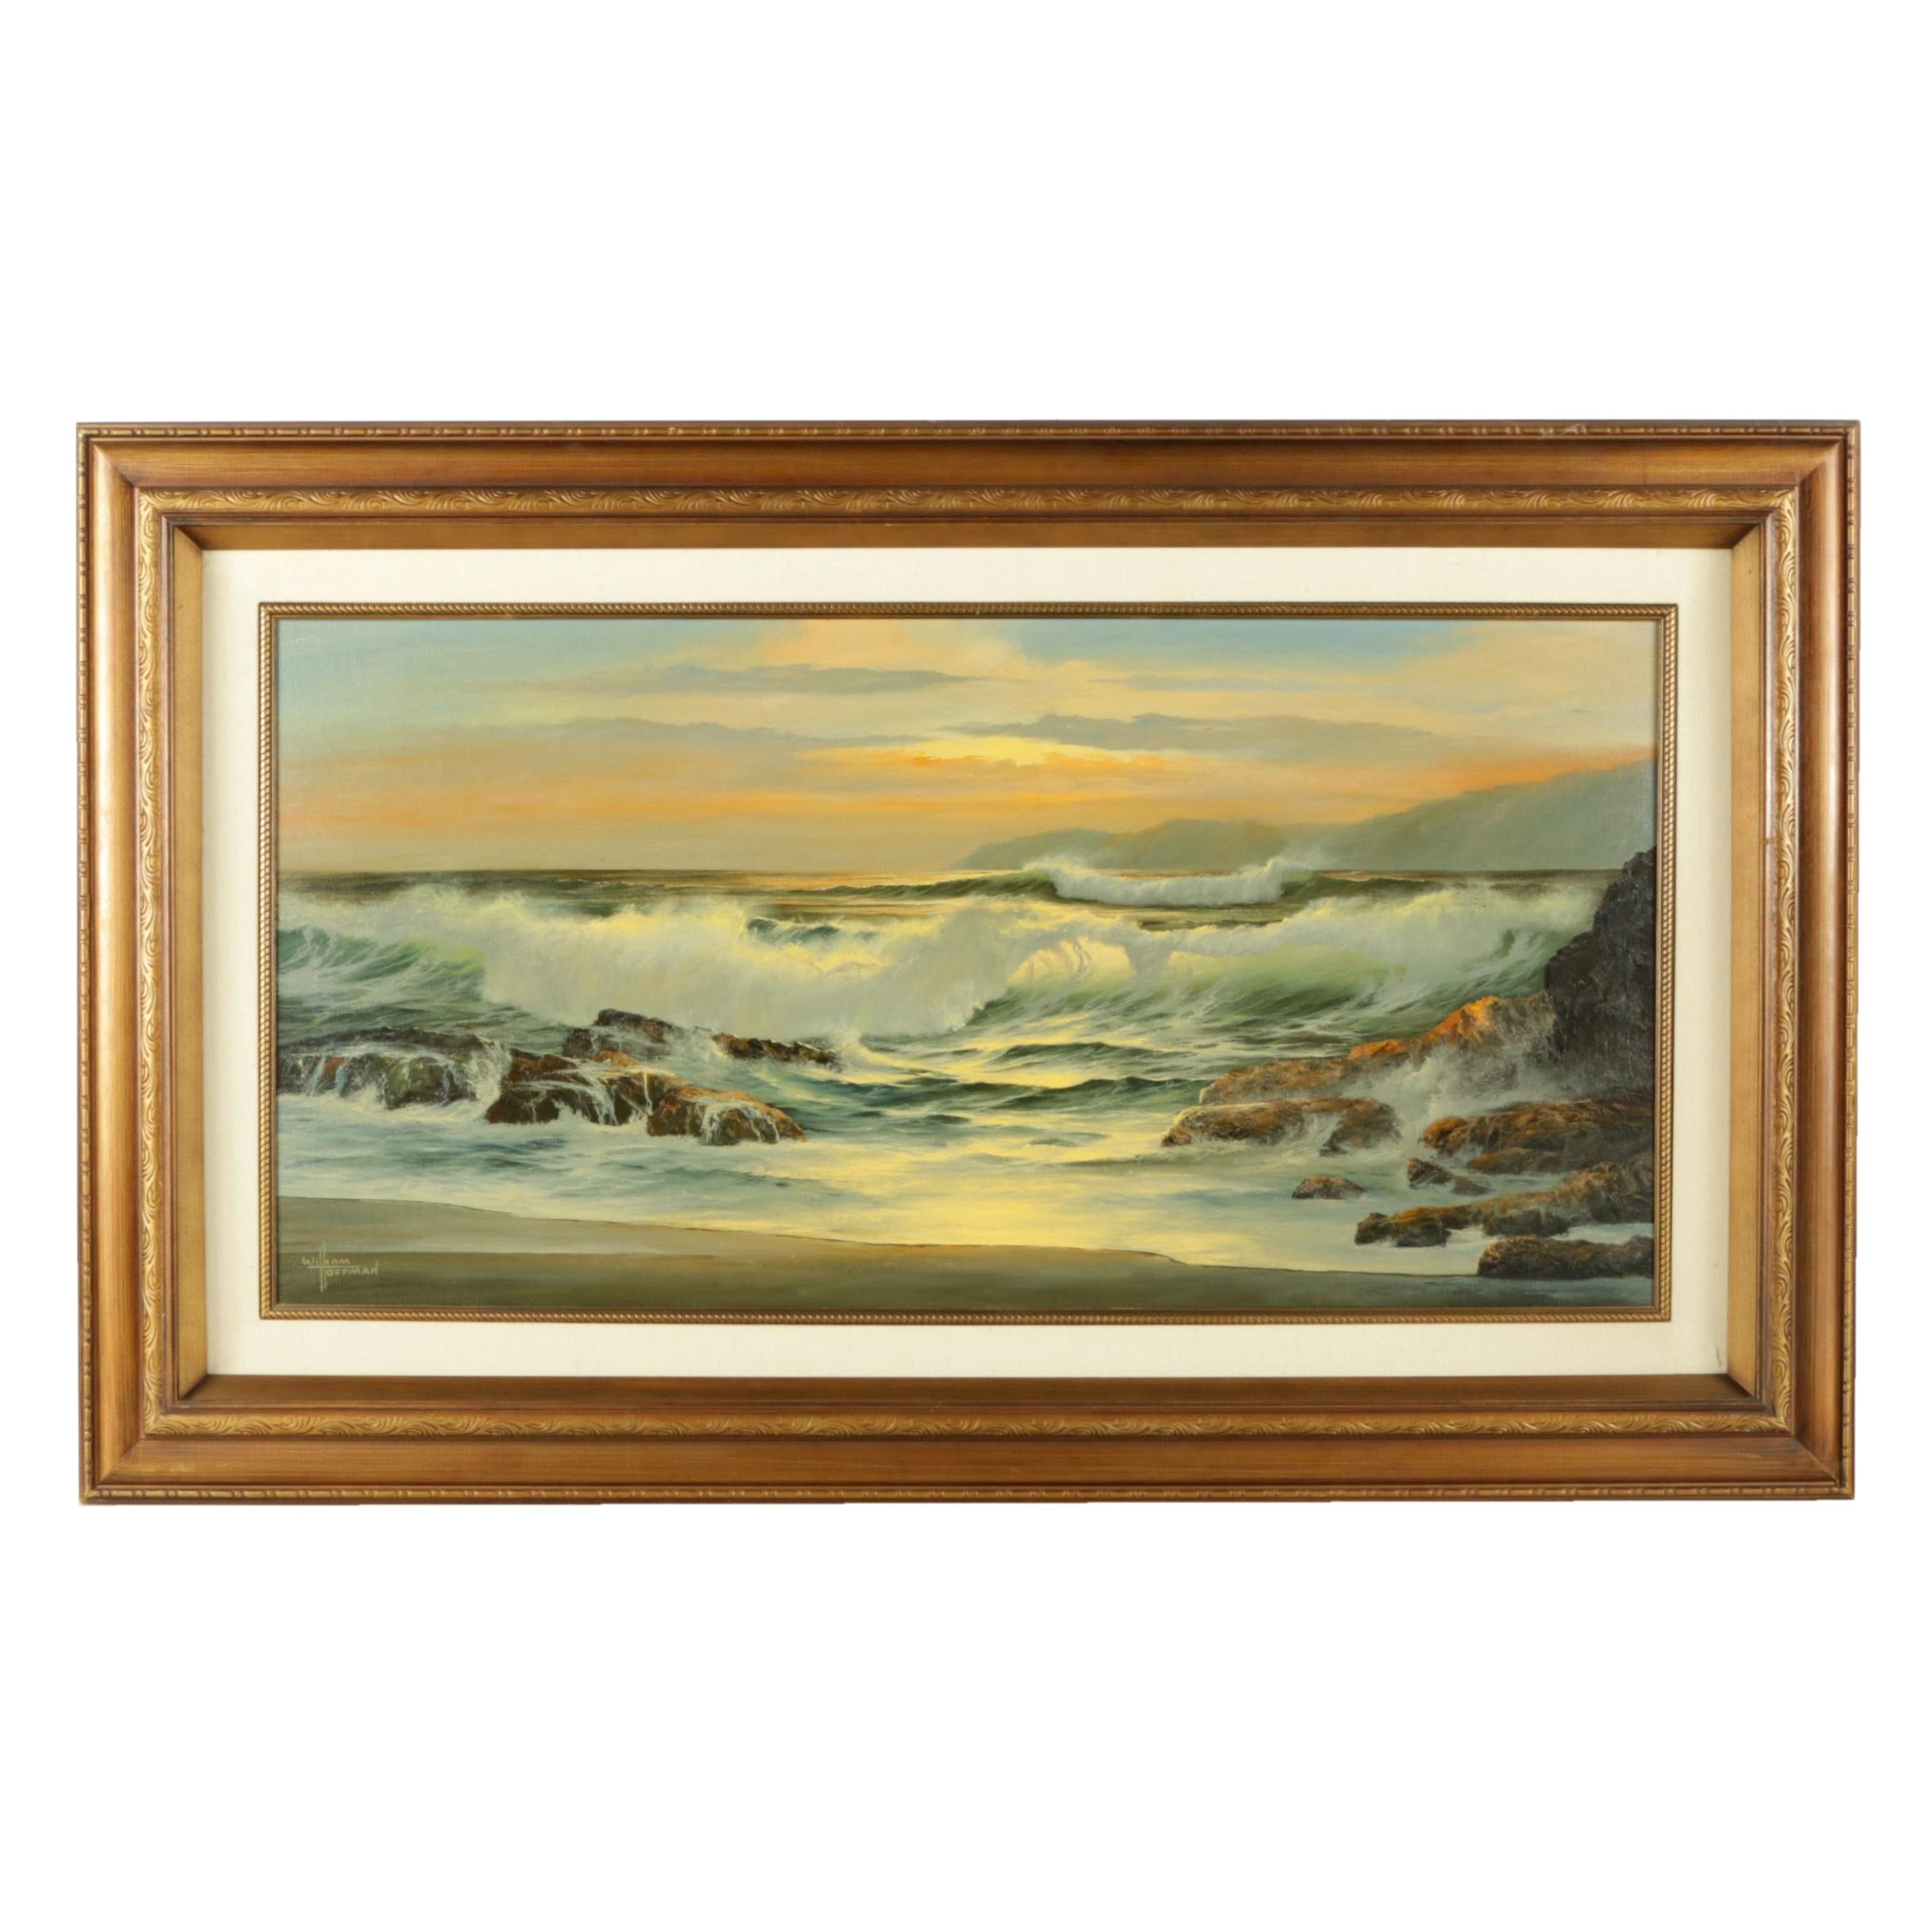 William Hoffman Oil on Canvas Seascape Painting